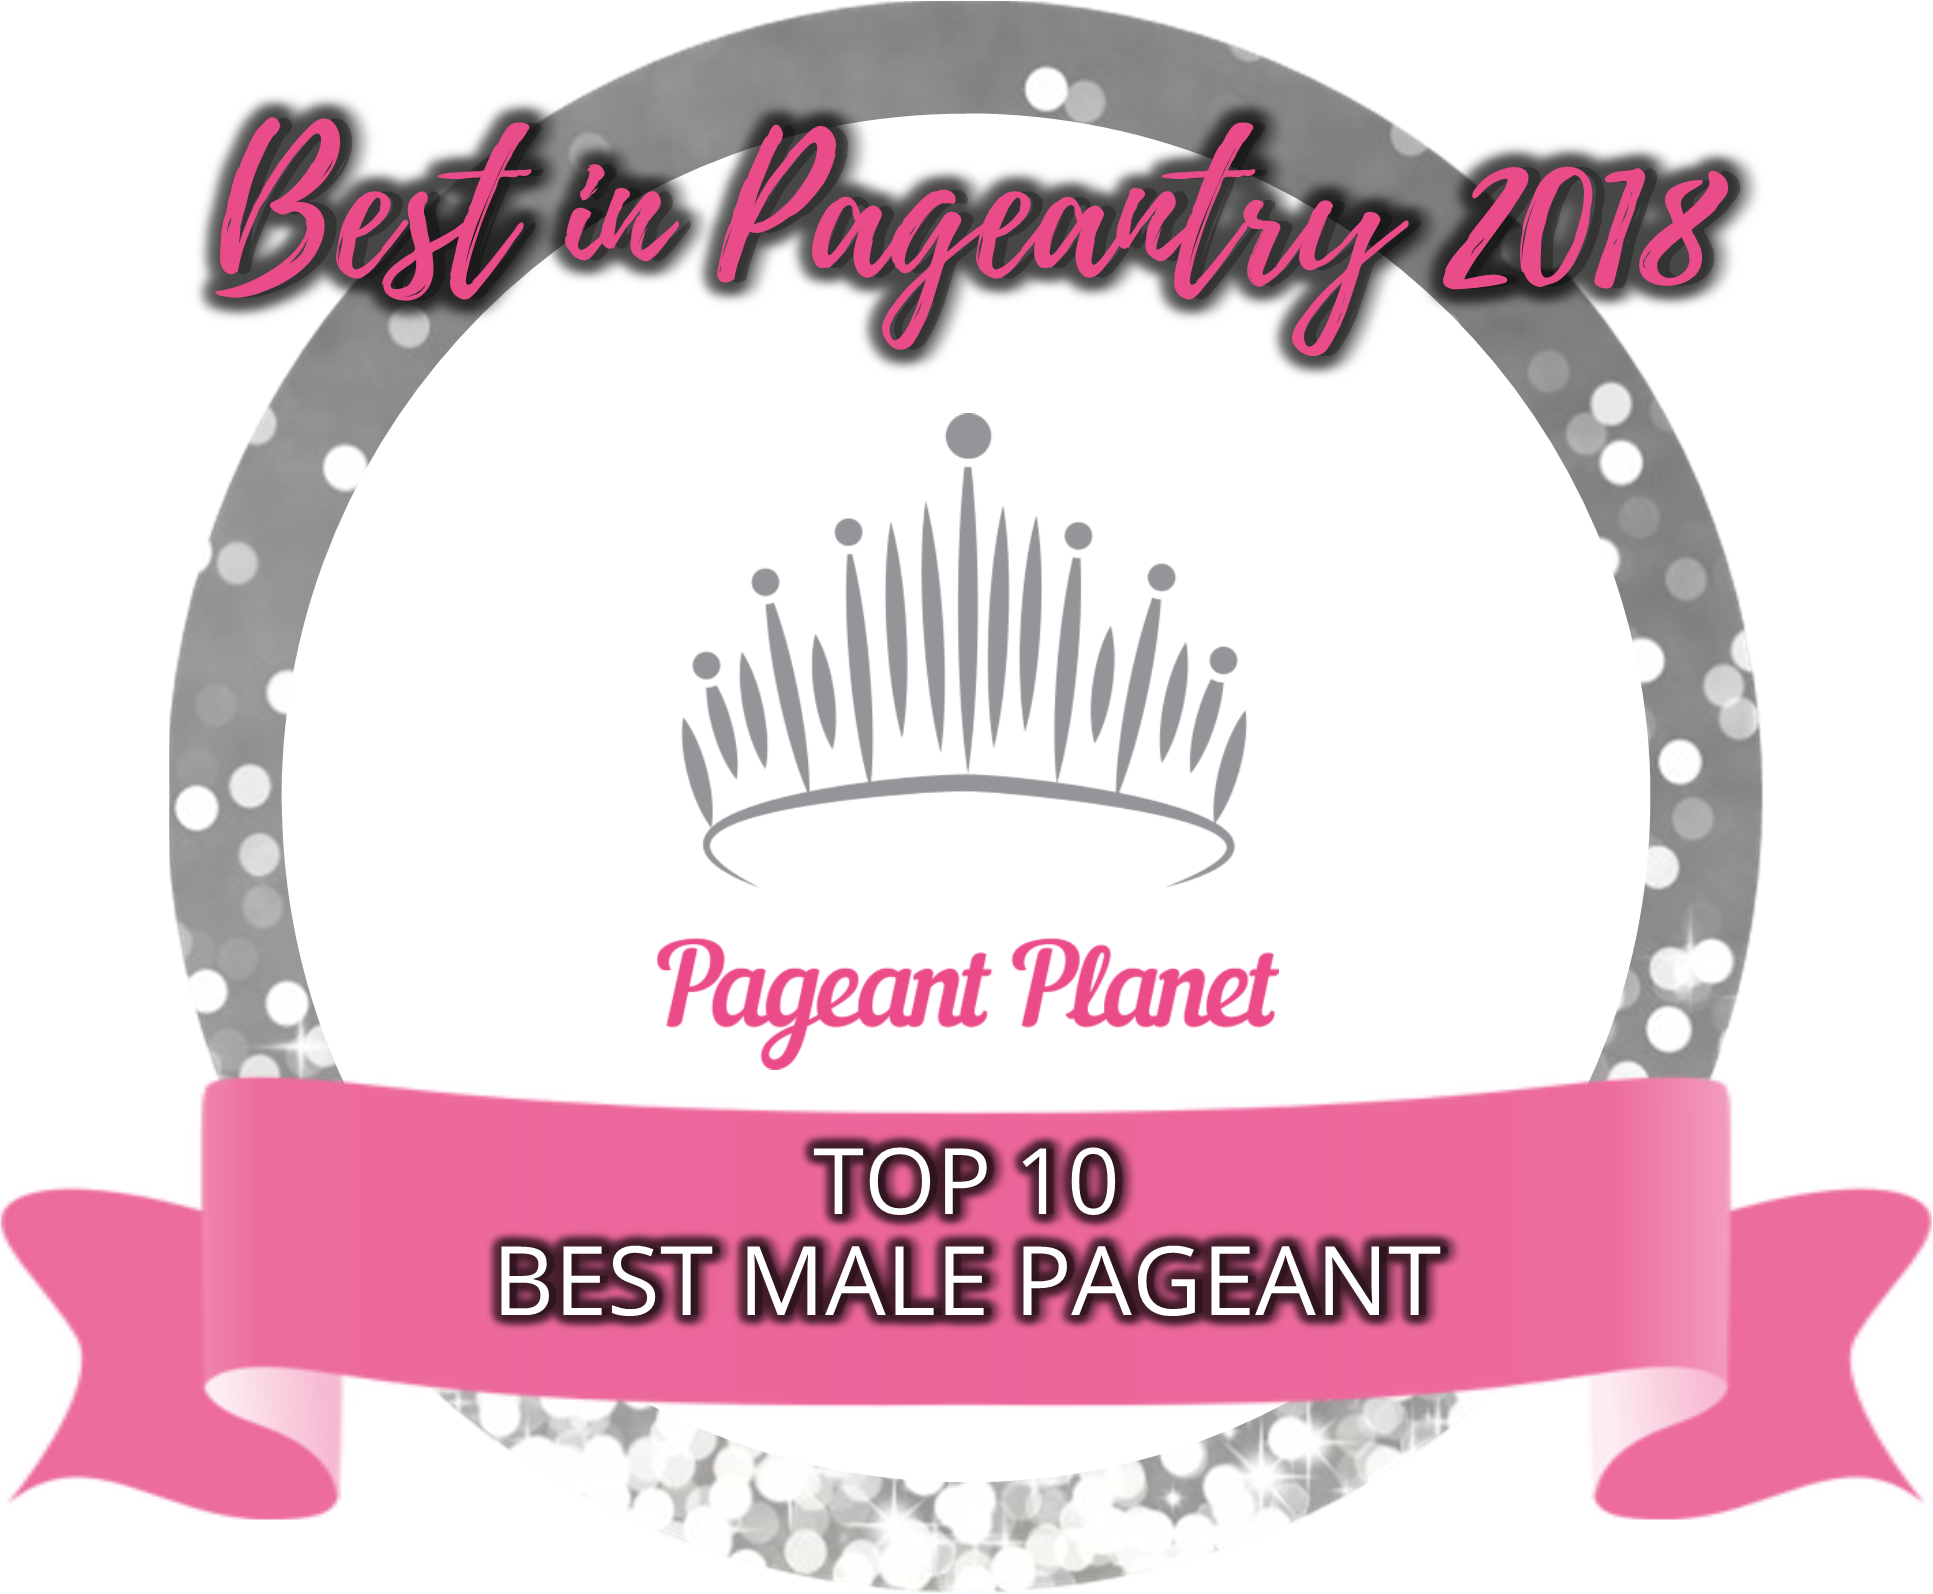 Top 10 Best Male Pageant of 2018